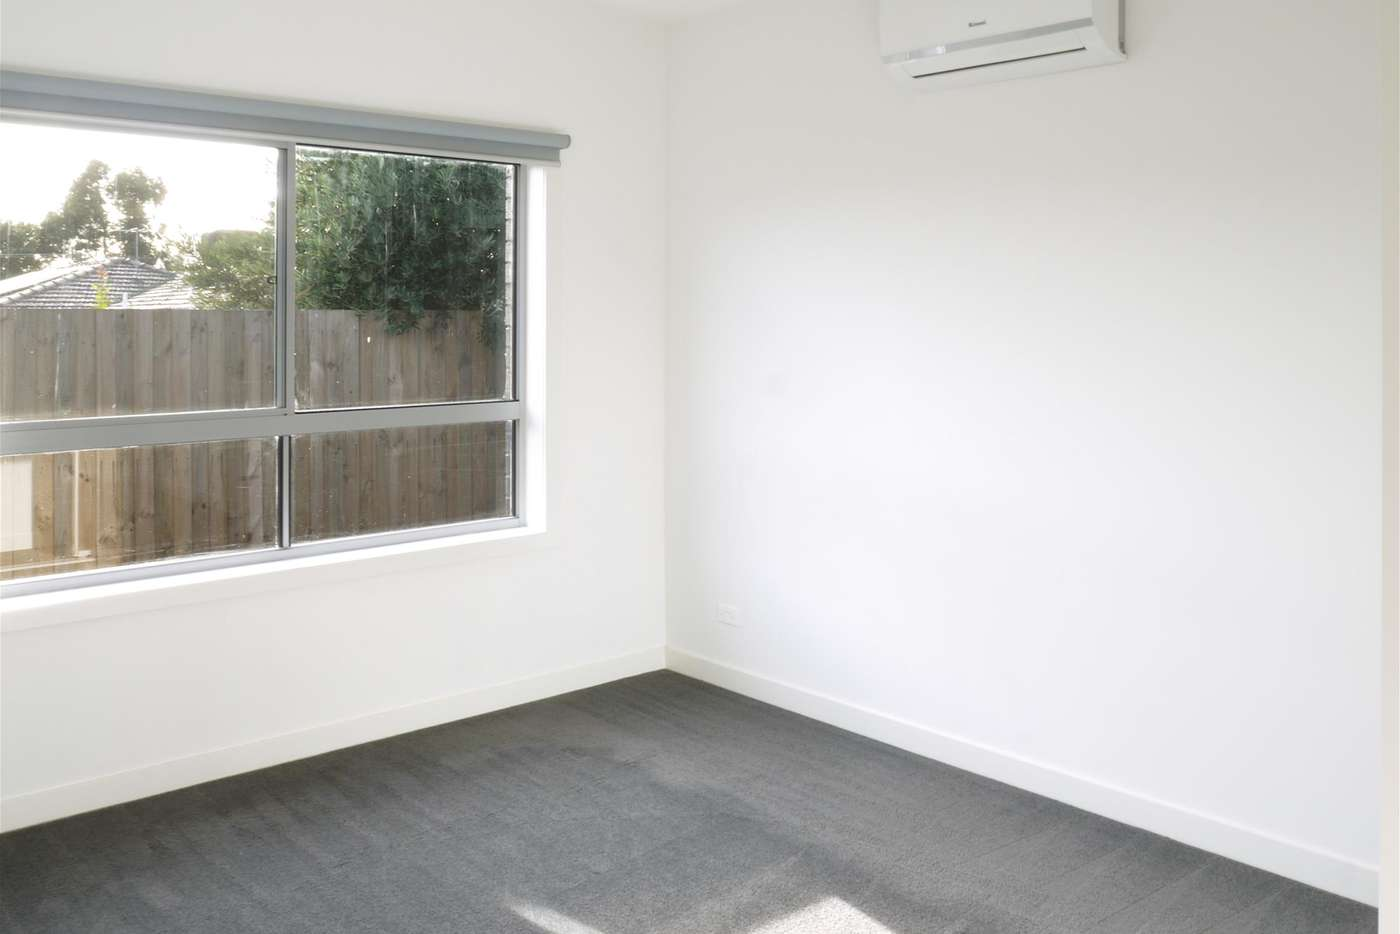 Sixth view of Homely unit listing, 6/68 Gowrie Street, Glenroy VIC 3046